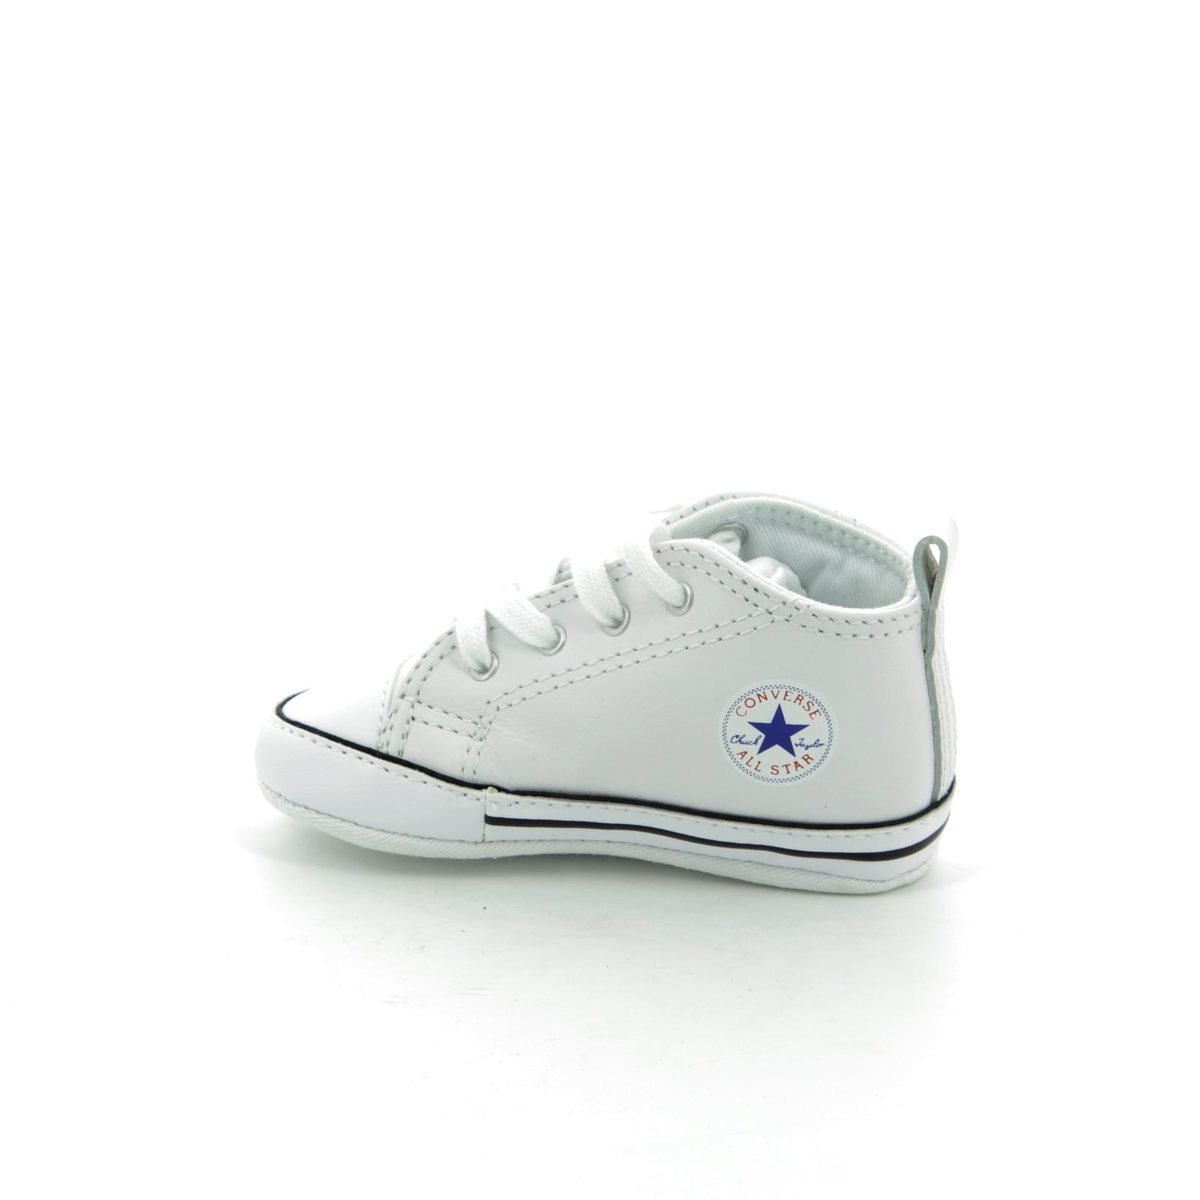 Converse First Star Crib Shoes Black